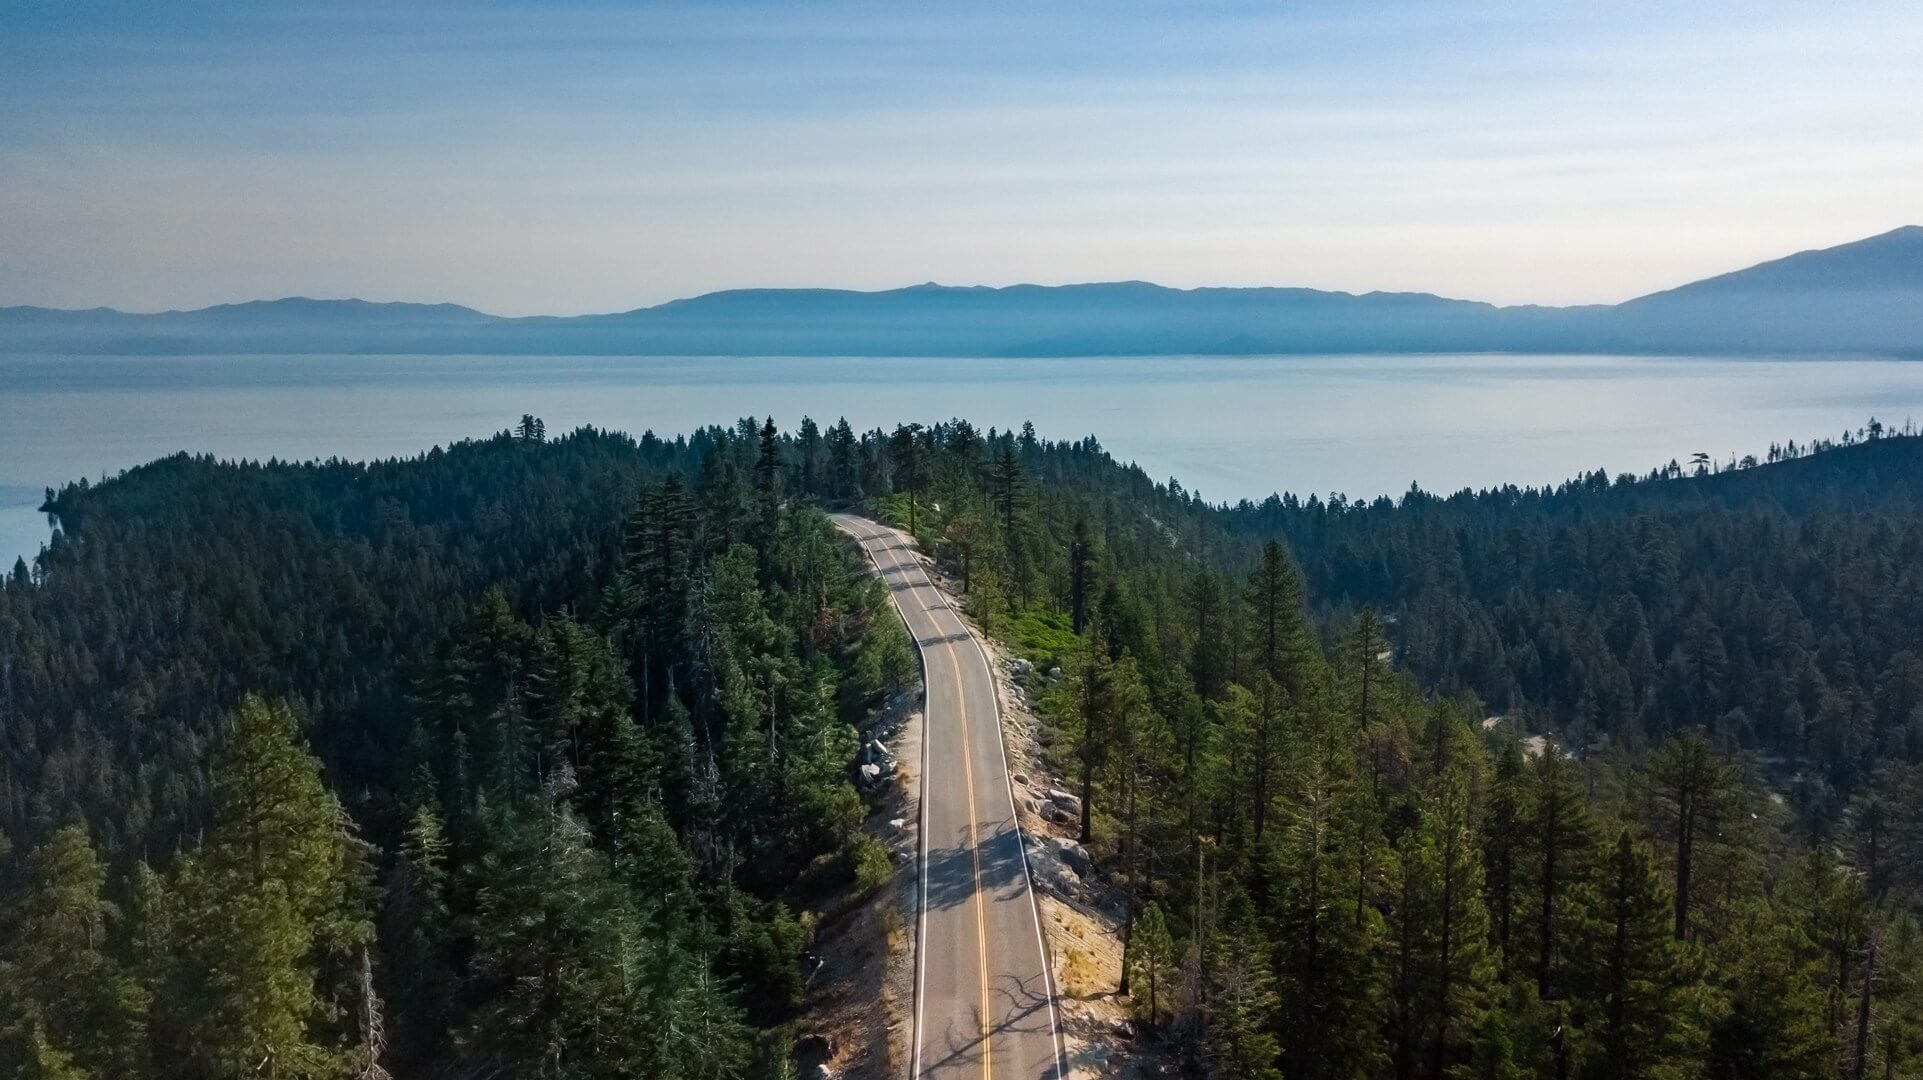 Getting to Lake Tahoe road to Emerald Bay in Lake Tahoe